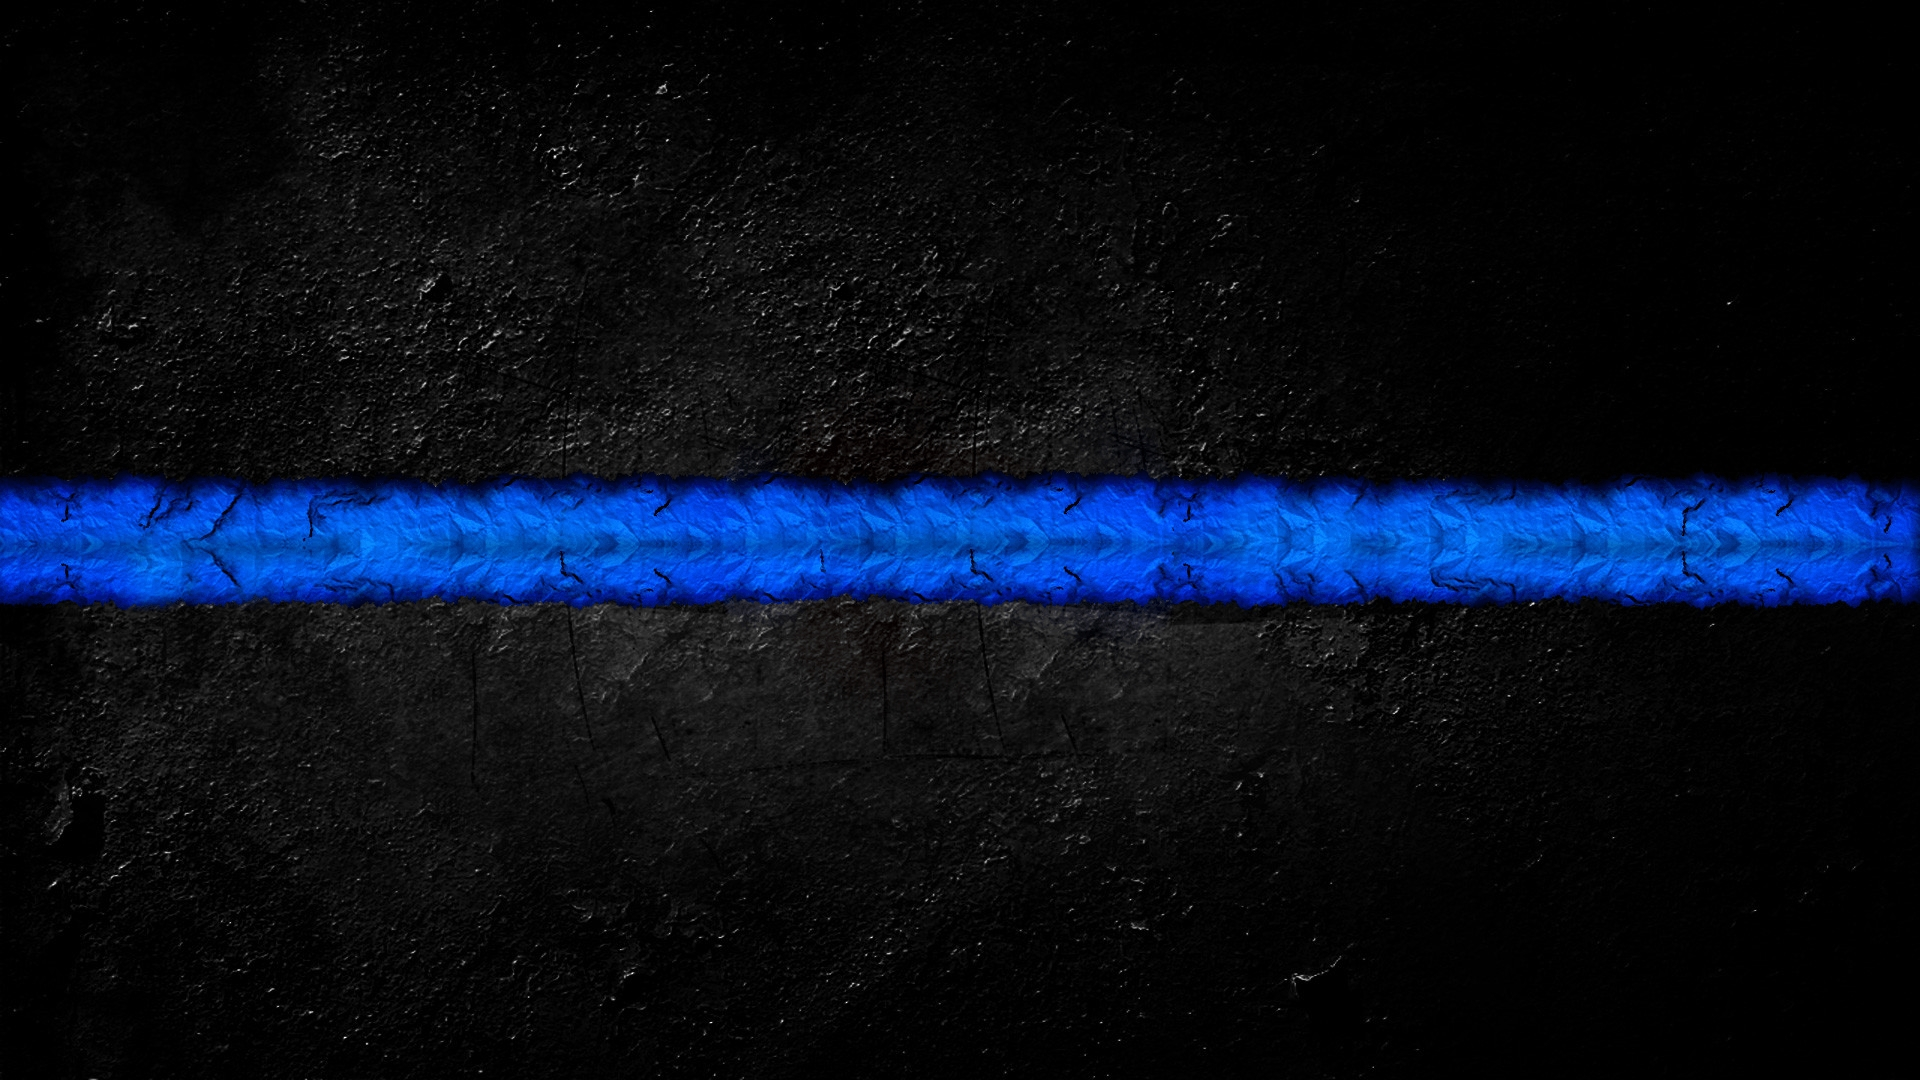 Title Thin Blue Line Wallpapers Wallpaper Cave Dimension 1920 X 1080 File Type JPG JPEG